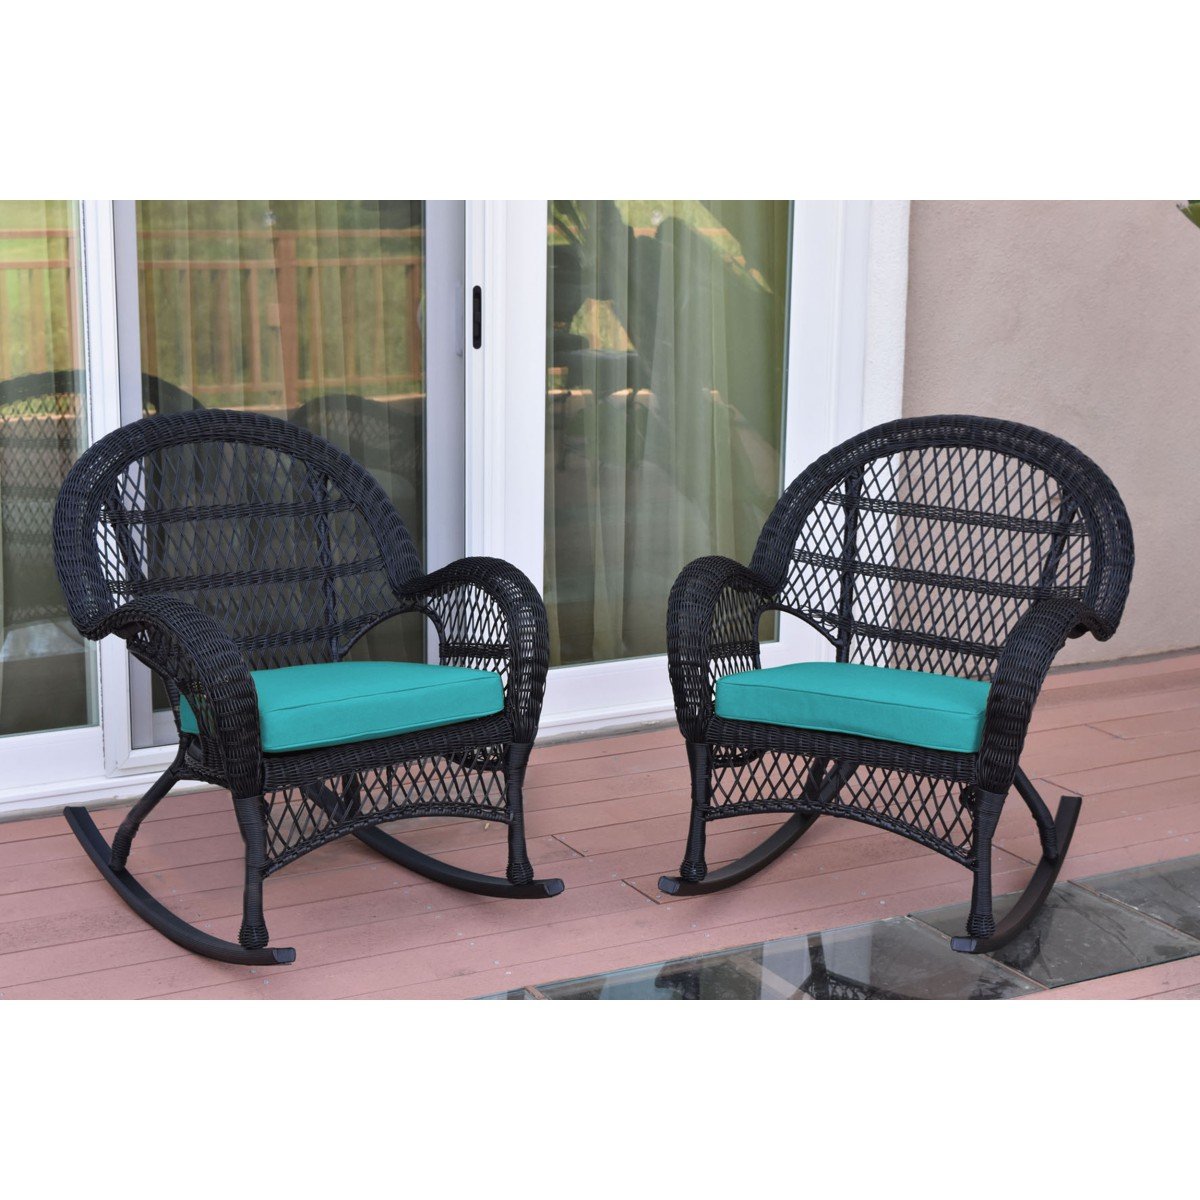 Picture of: Santa Maria Black Wicker Rocker Chair With Turquoise Cushion Set Of 2